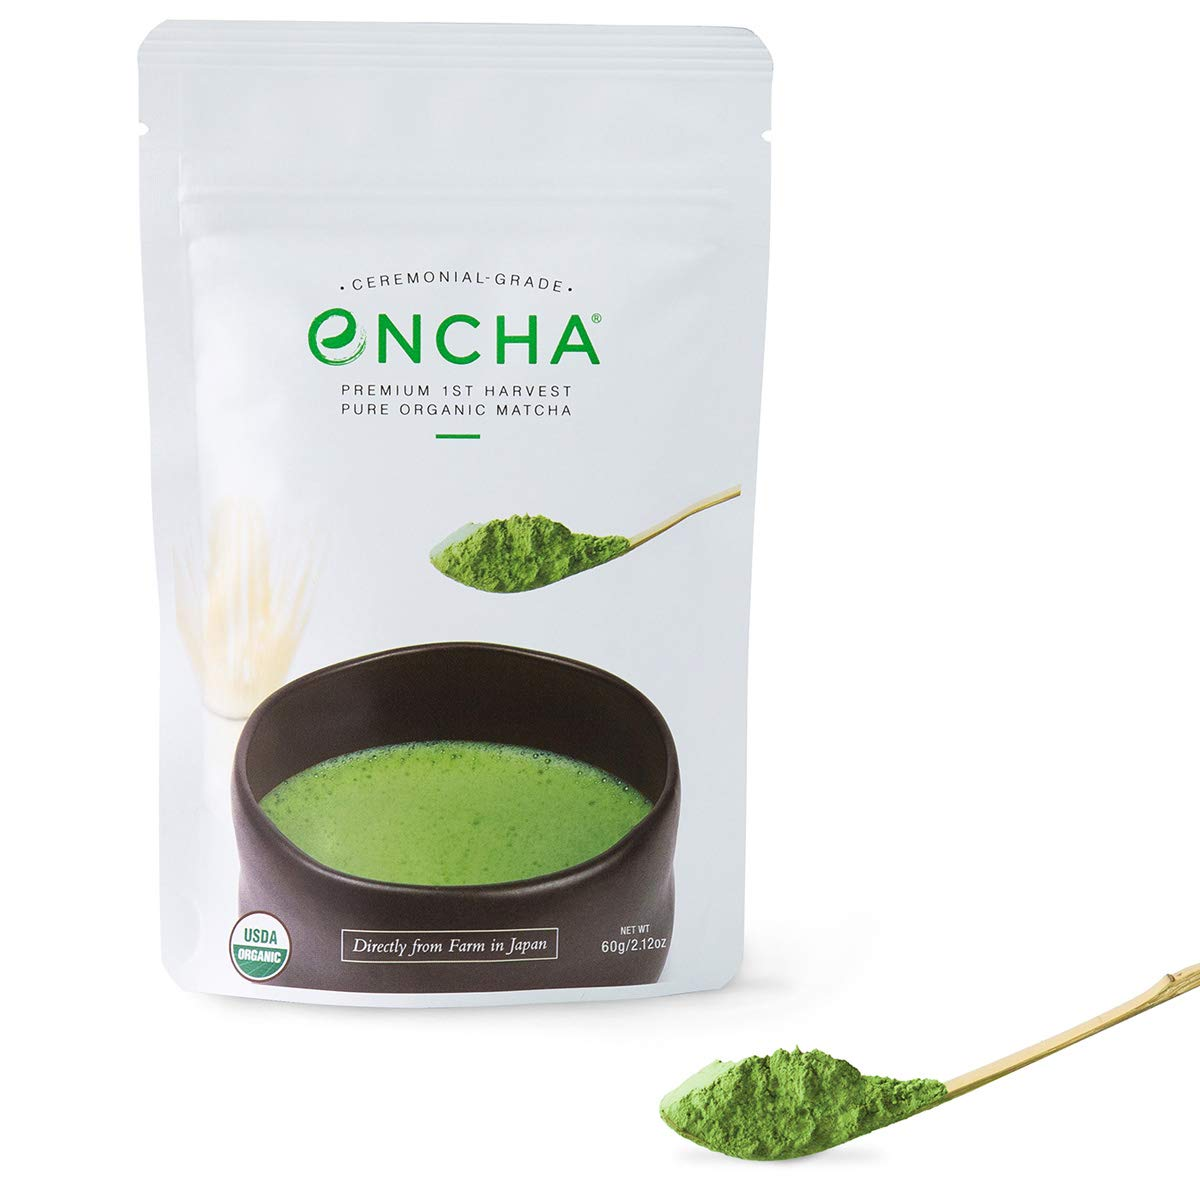 Encha Ceremonial Organic Matcha (USDA Organic Certificate and Antioxidant Content Listed, Premium First Harvest Directly from Farm in Uji, Japan, 60g/2.12oz in Resealable Pouch) by Encha